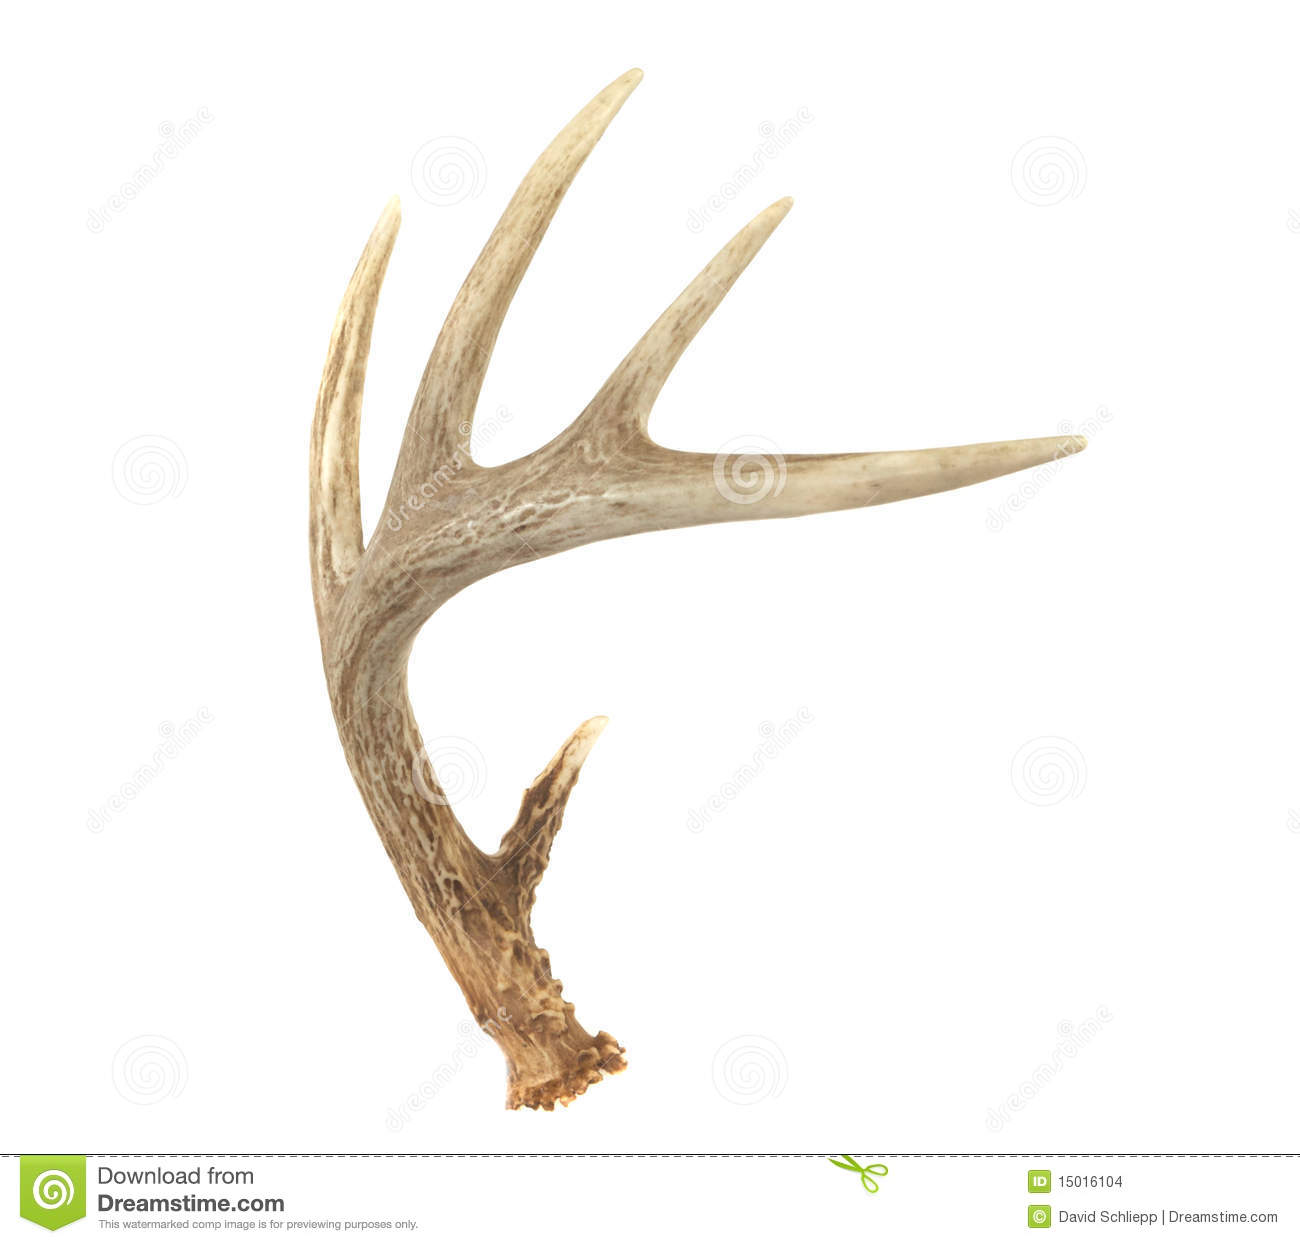 More similar stock images of ` Angled Whitetail Deer Antler `